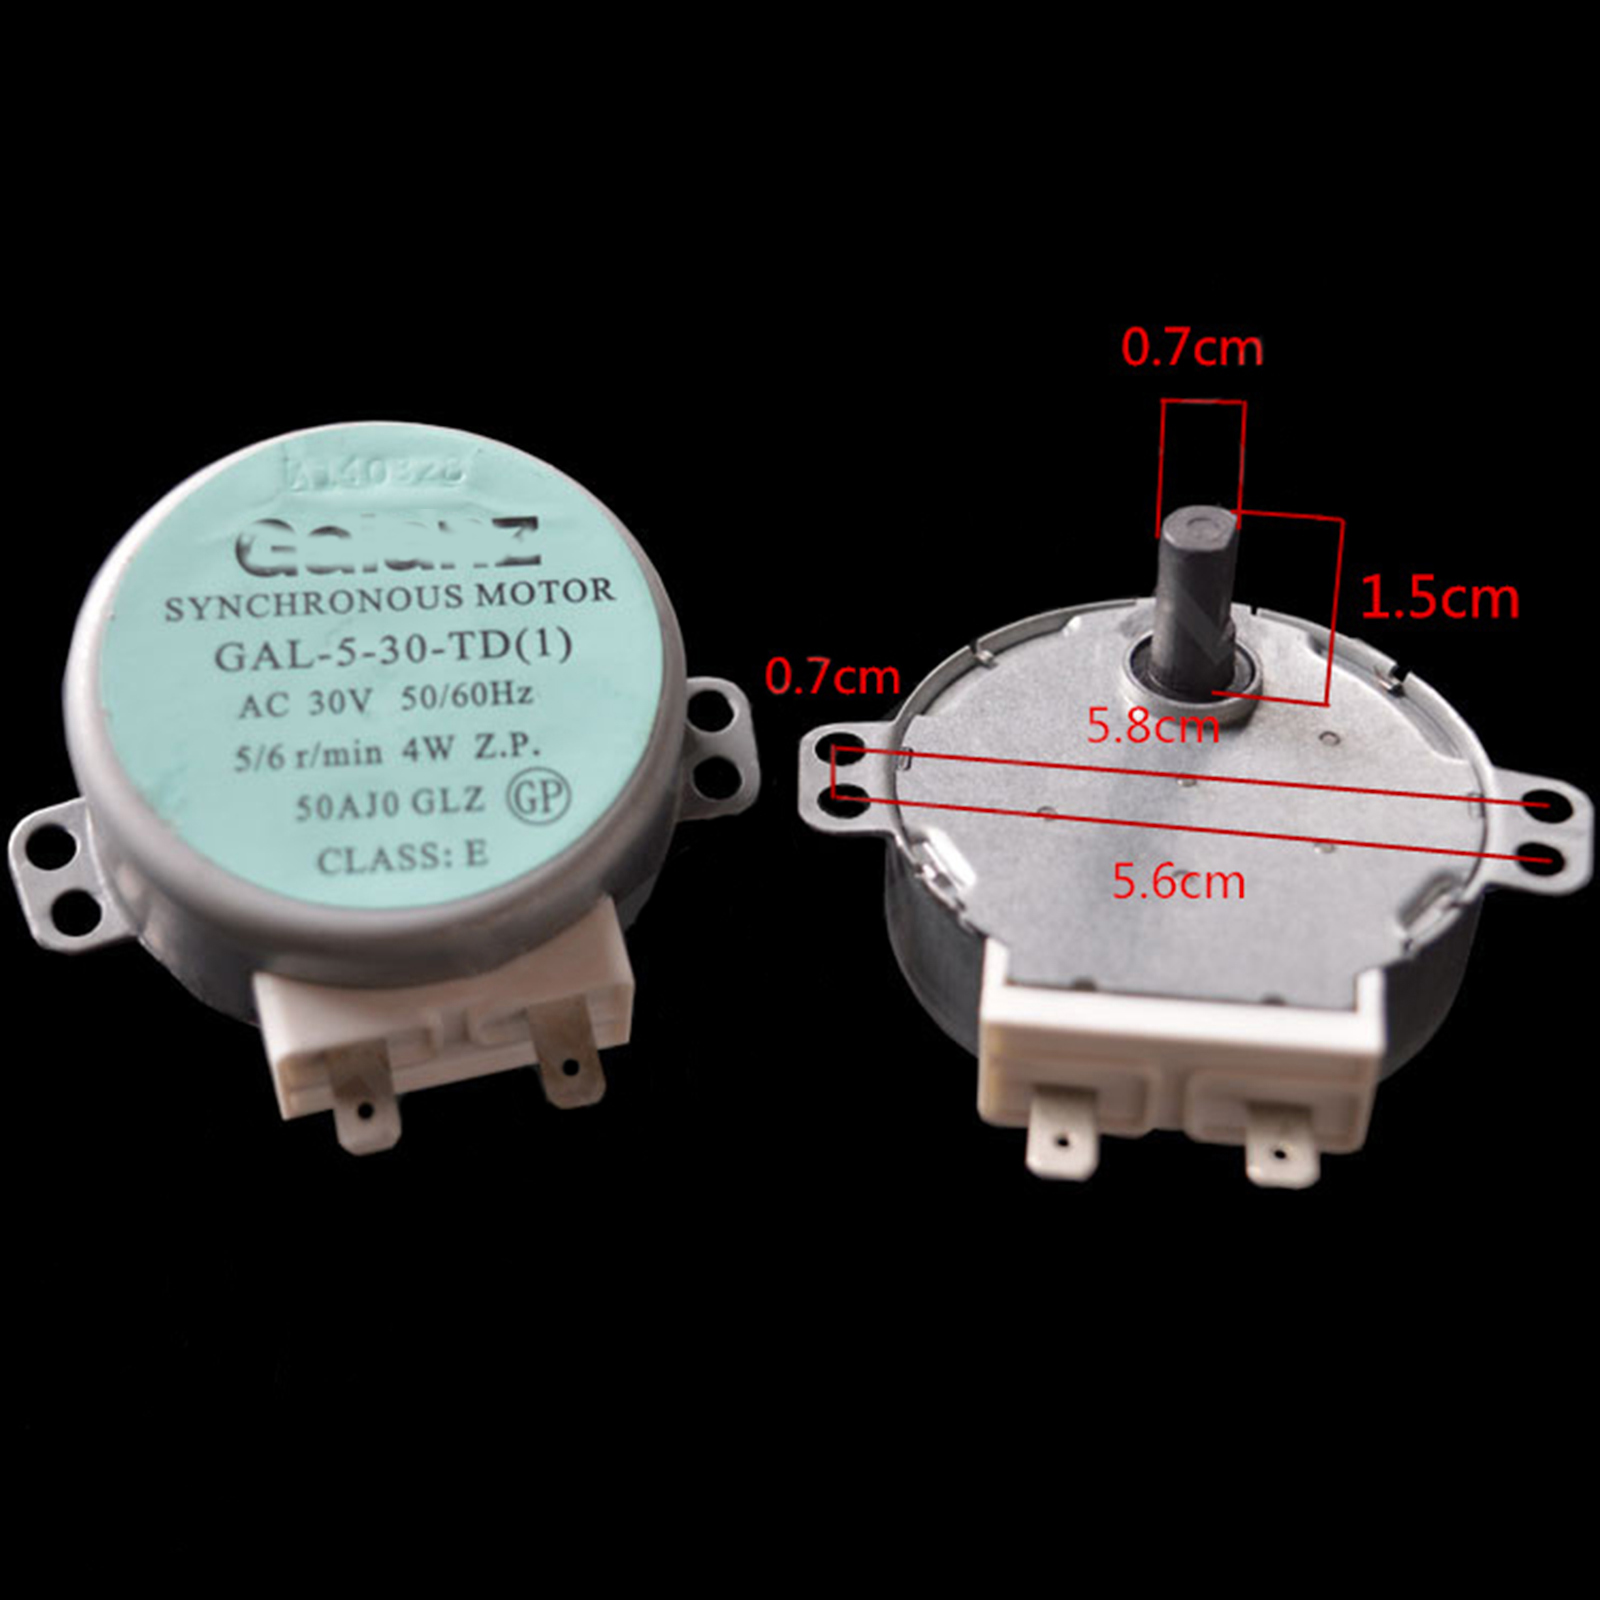 1pcs AC 30V Microwave Oven Synchronous Turntable Motor Tray Motor For GALANZ Microwave Oven GAL-5-30-TD 4W Accessories